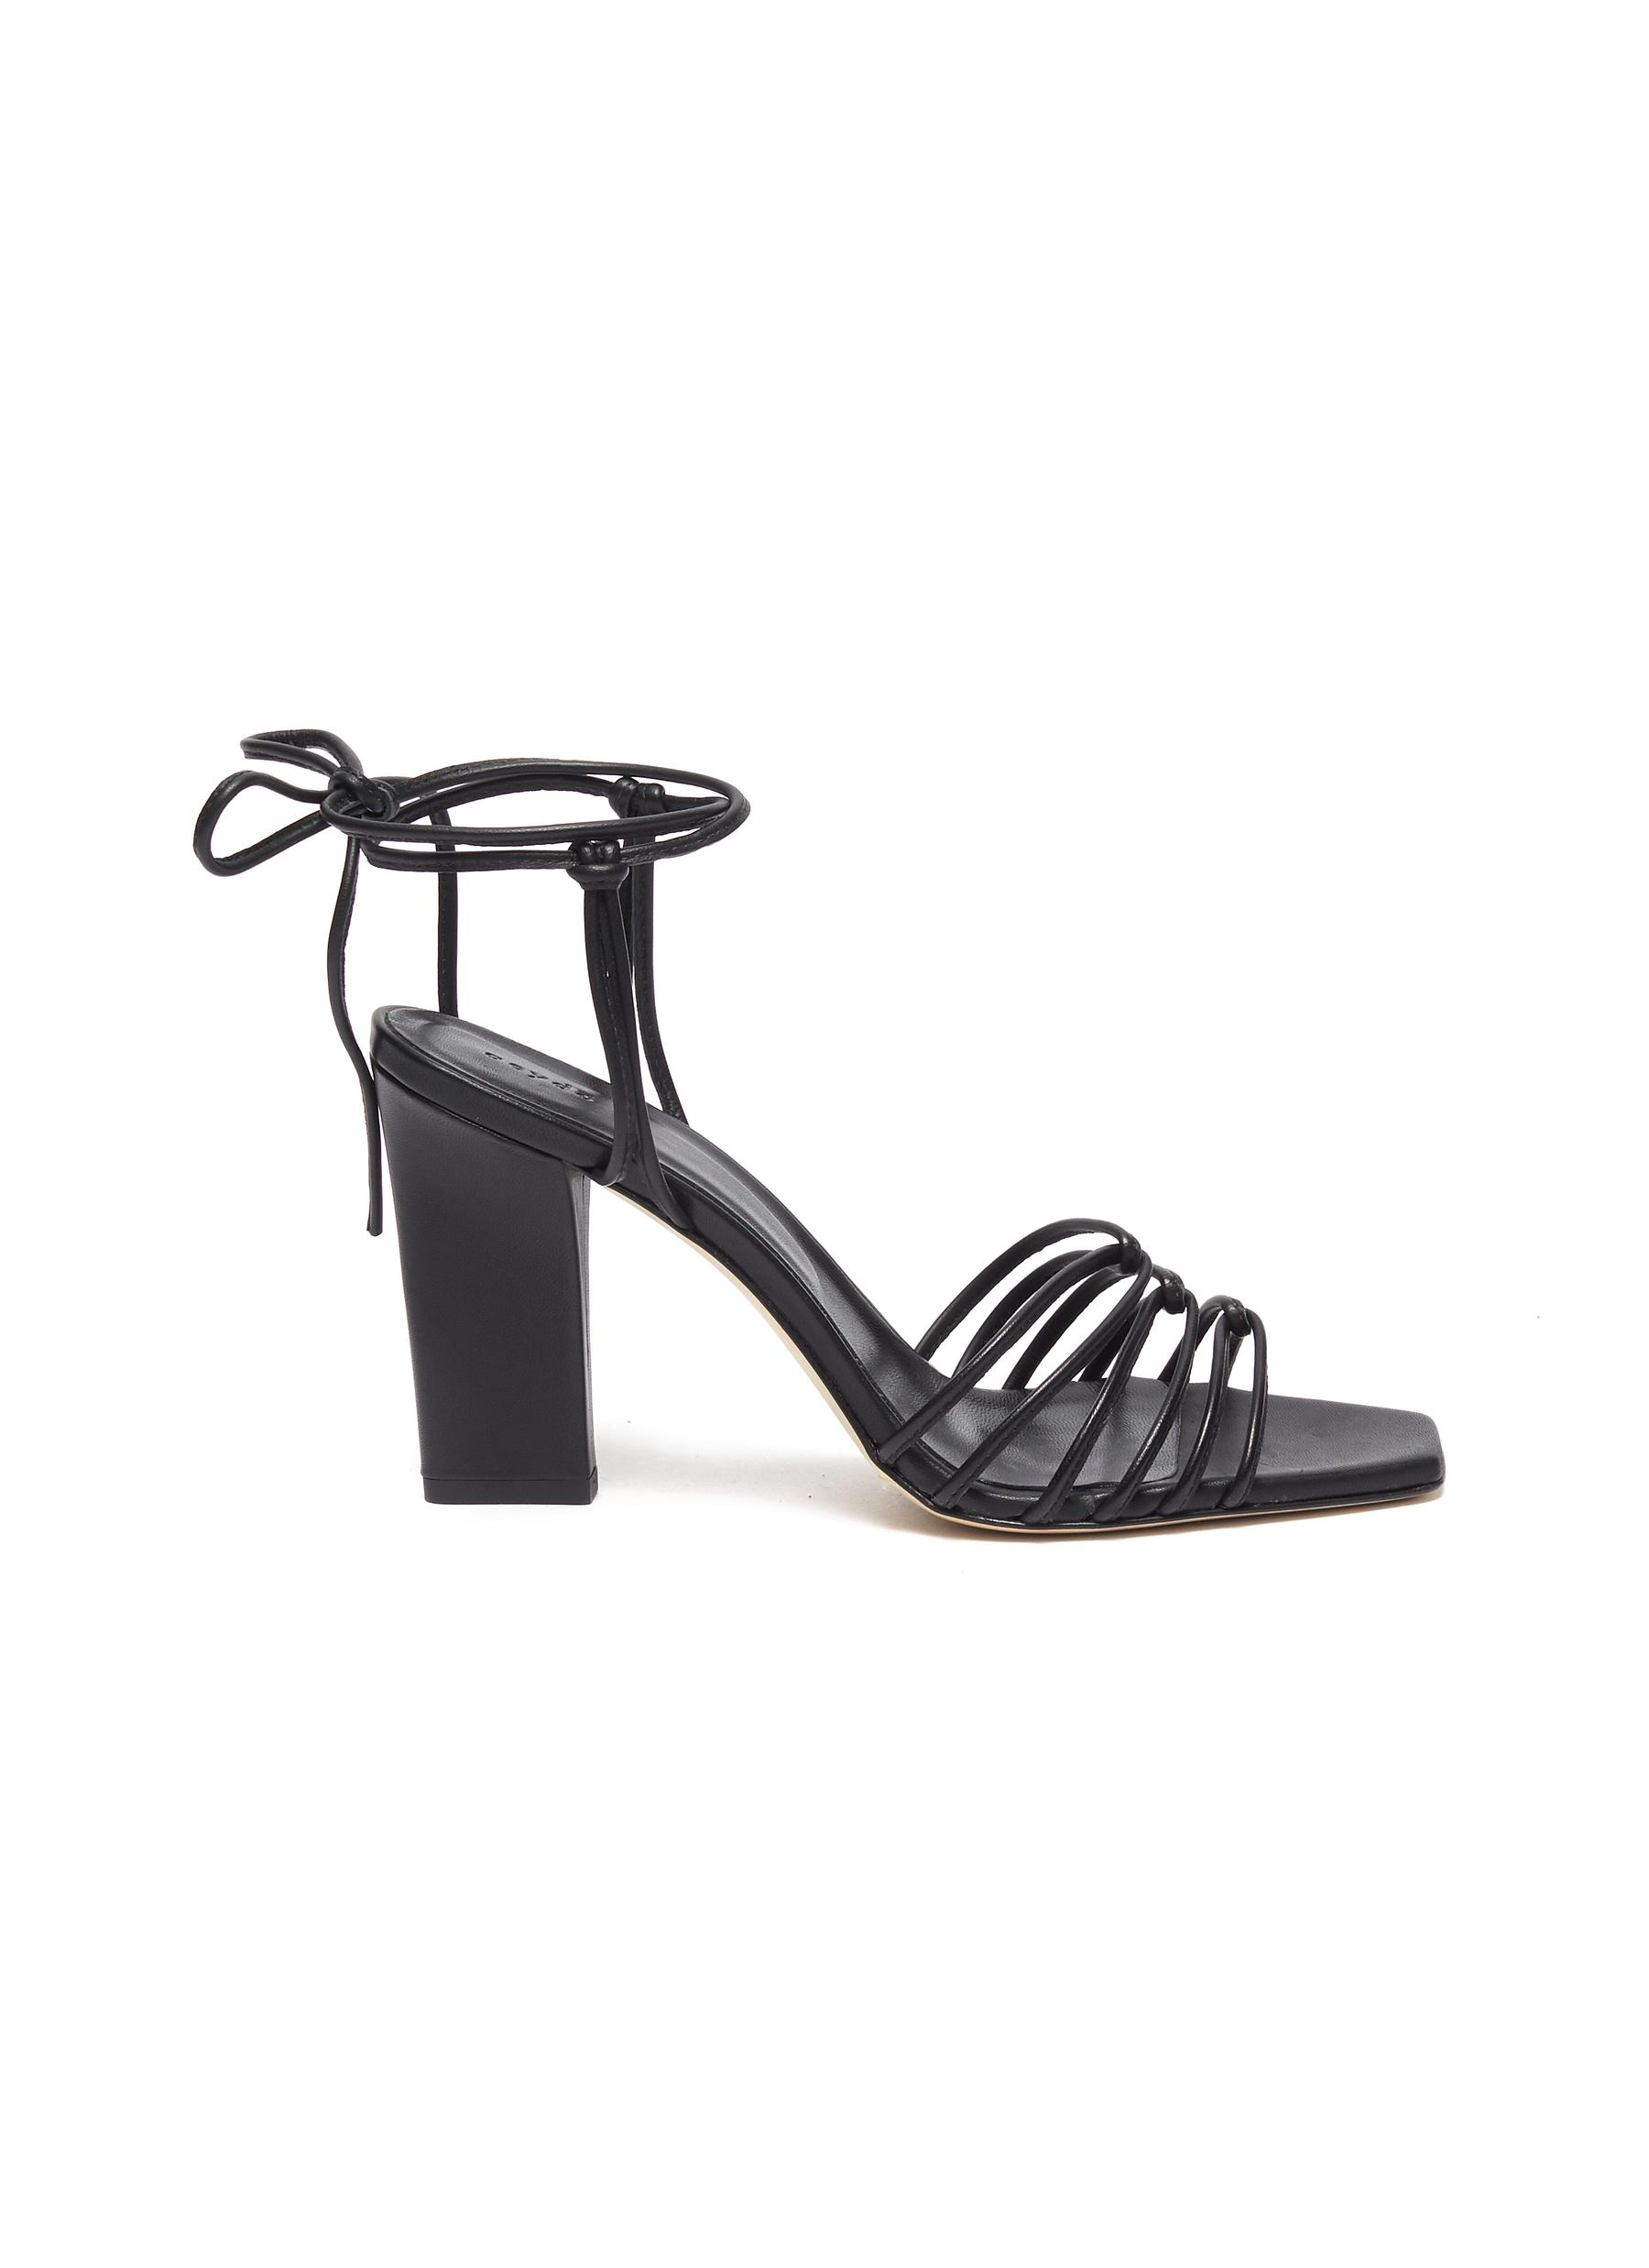 Daisy strappy leather sandals by Aeyde